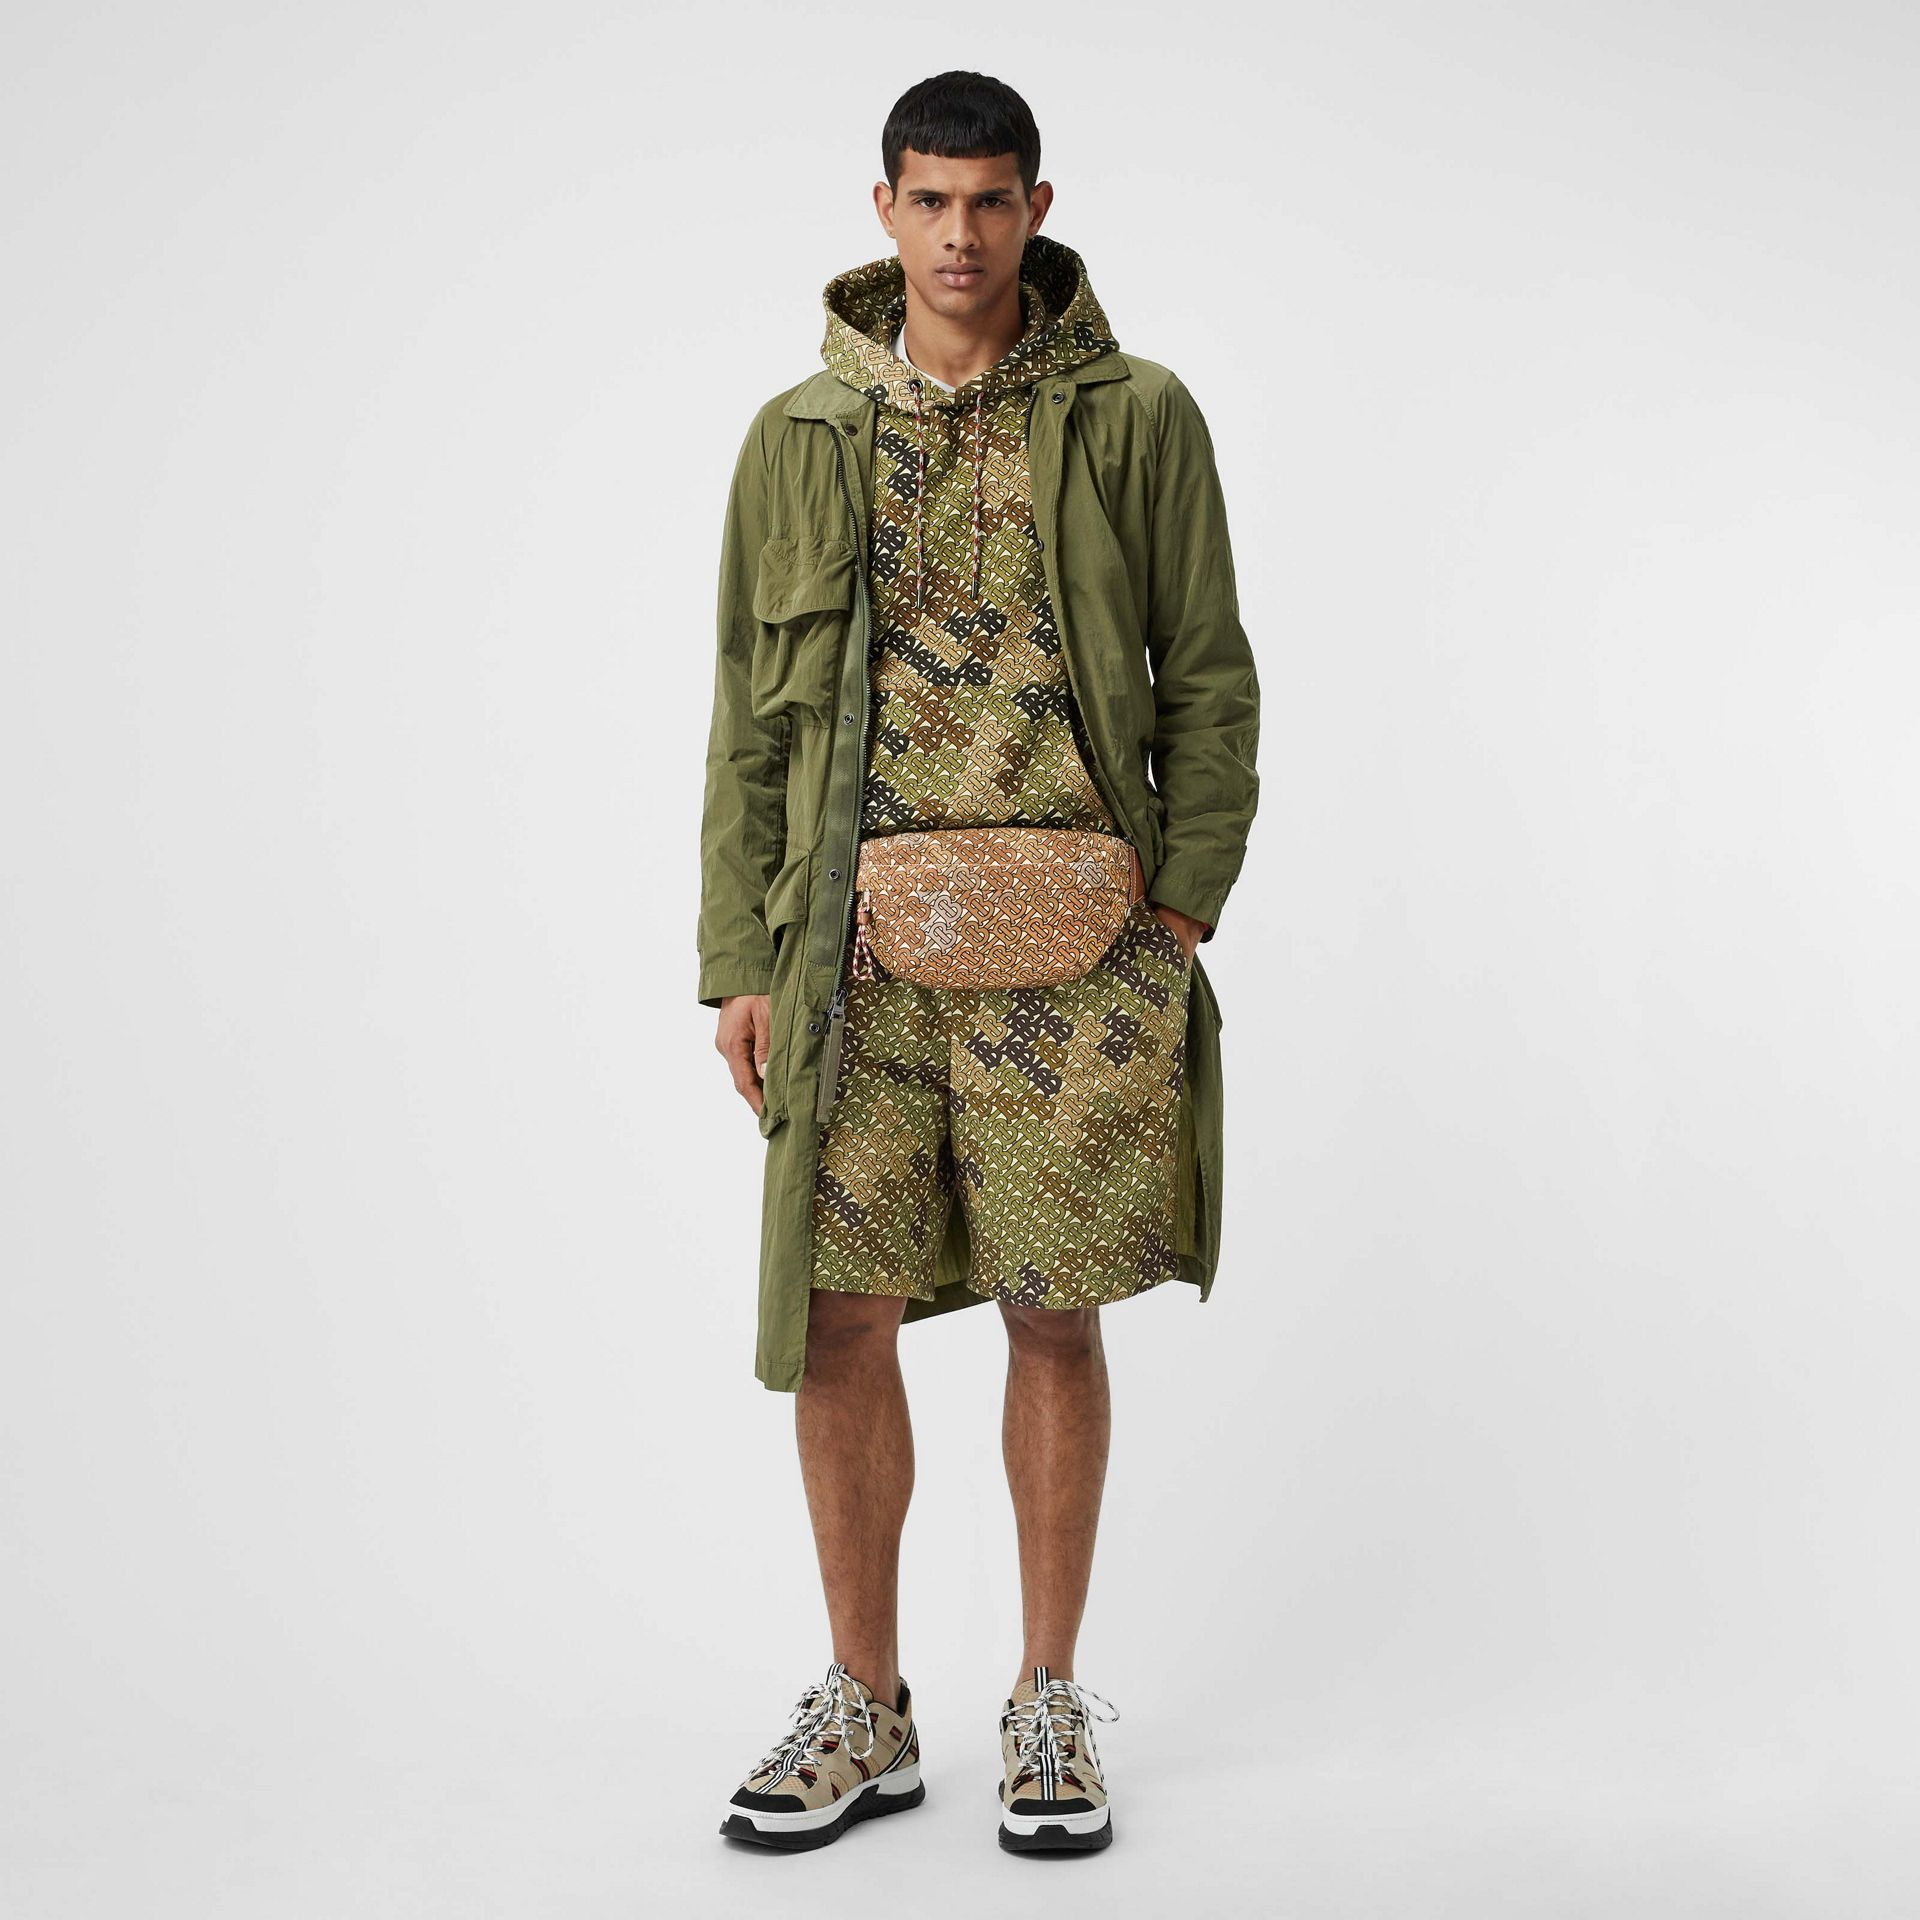 Sac banane moyen Monogram (Marron Camouflage) - Homme | Burberry - photo de la galerie 7